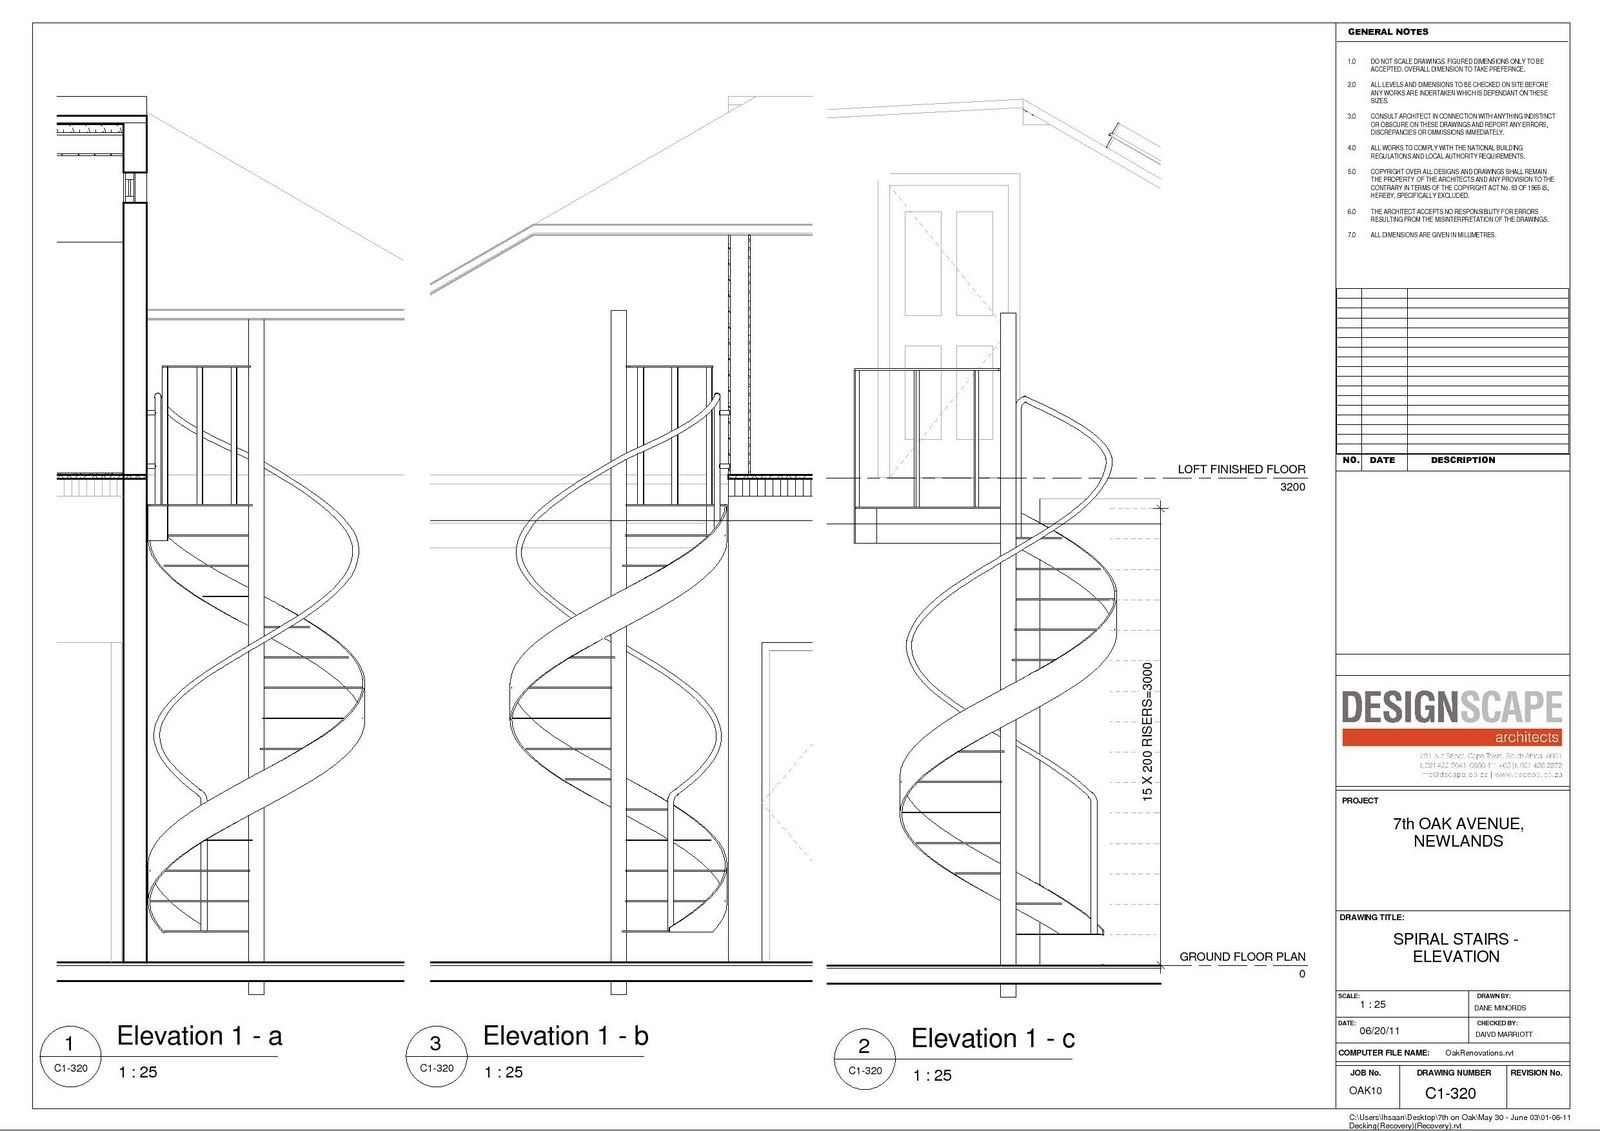 dane minords pss spiral staircases spiral staircase. Black Bedroom Furniture Sets. Home Design Ideas